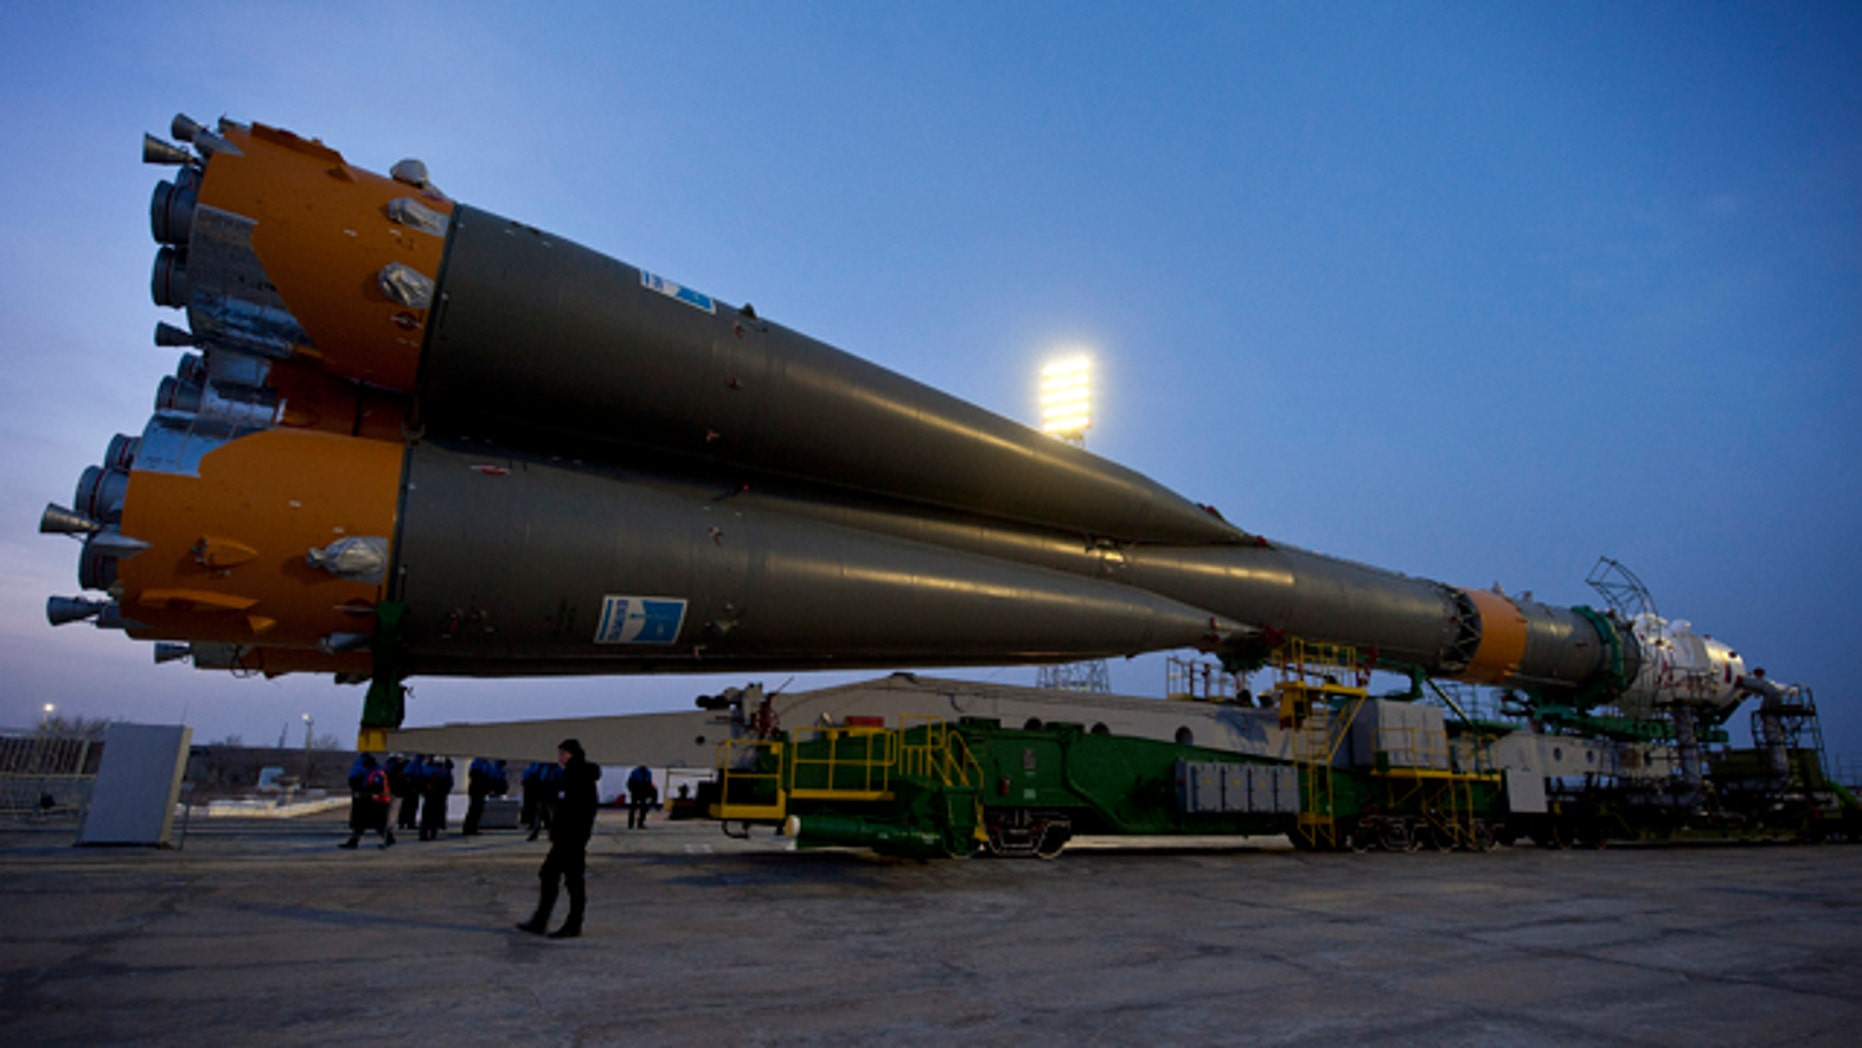 This image provided by NASA shows the Soyuz TMA-20 spacecraft as it arrives at the launch pad Monday, Dec. 13, 2010 at the Baikonur Cosmodrome in Kazakhstan.  NASA astronaut Catherine Coleman, Russian cosmonaut Dmitry Kondratyev and Paolo Nespoli of the European Space Agency are set to launch in the Soyuz to the International Space Station on Wednesday, Dec. 15, 2010, at 2:09 p.m. EST.